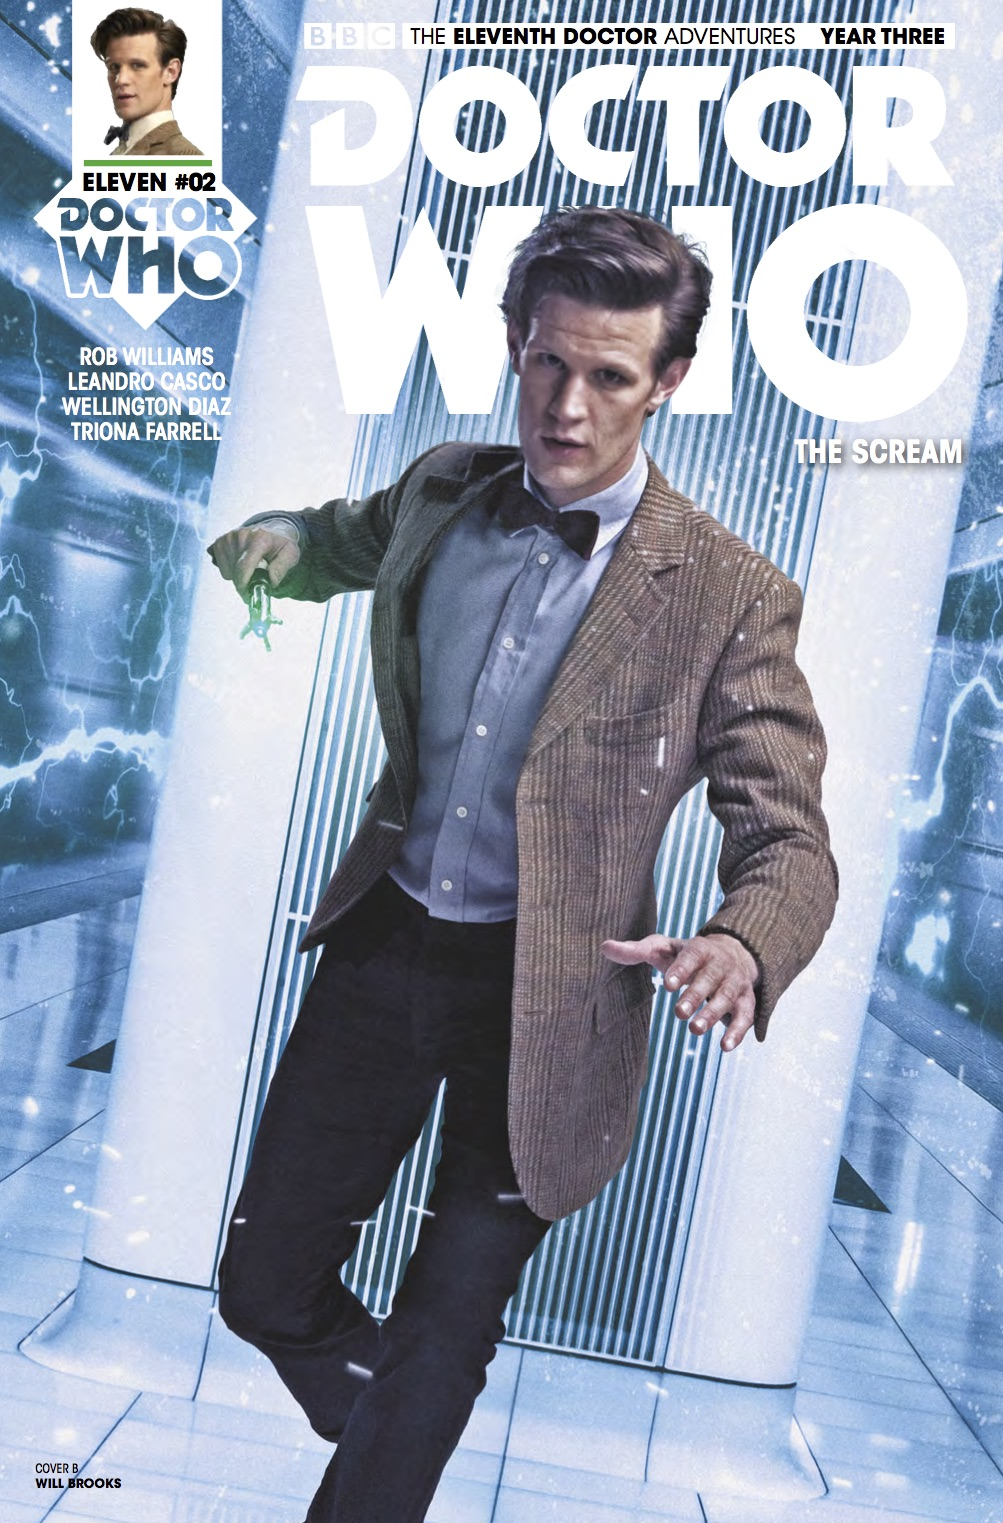 The Eleventh Doctor 3 2 Cover B (Credit: Titan / Will Brooks)